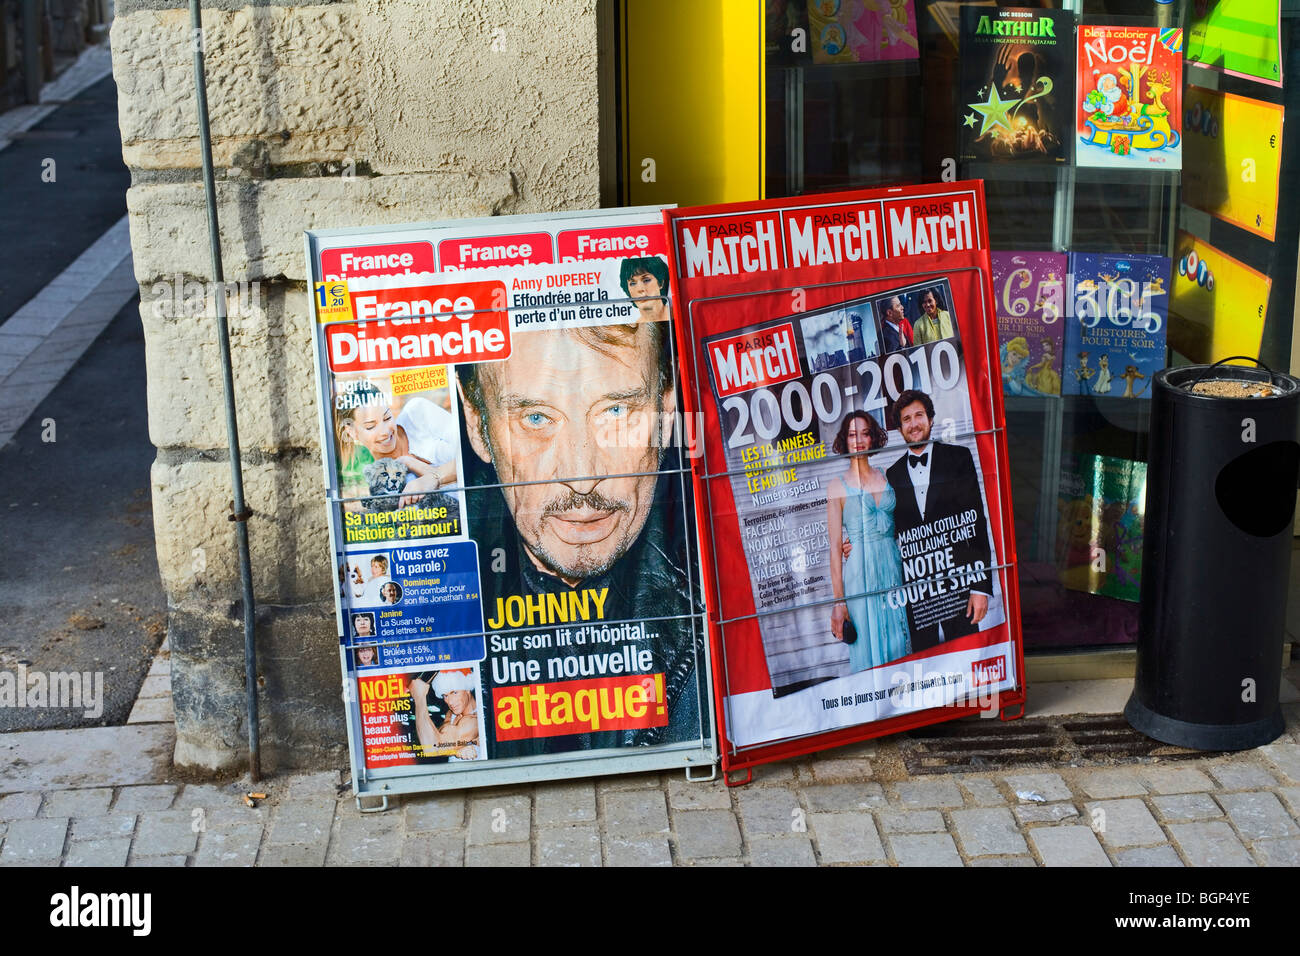 Magazine advertisement outside Tabac, Nuits Saint Georges, France, Europe - Stock Image